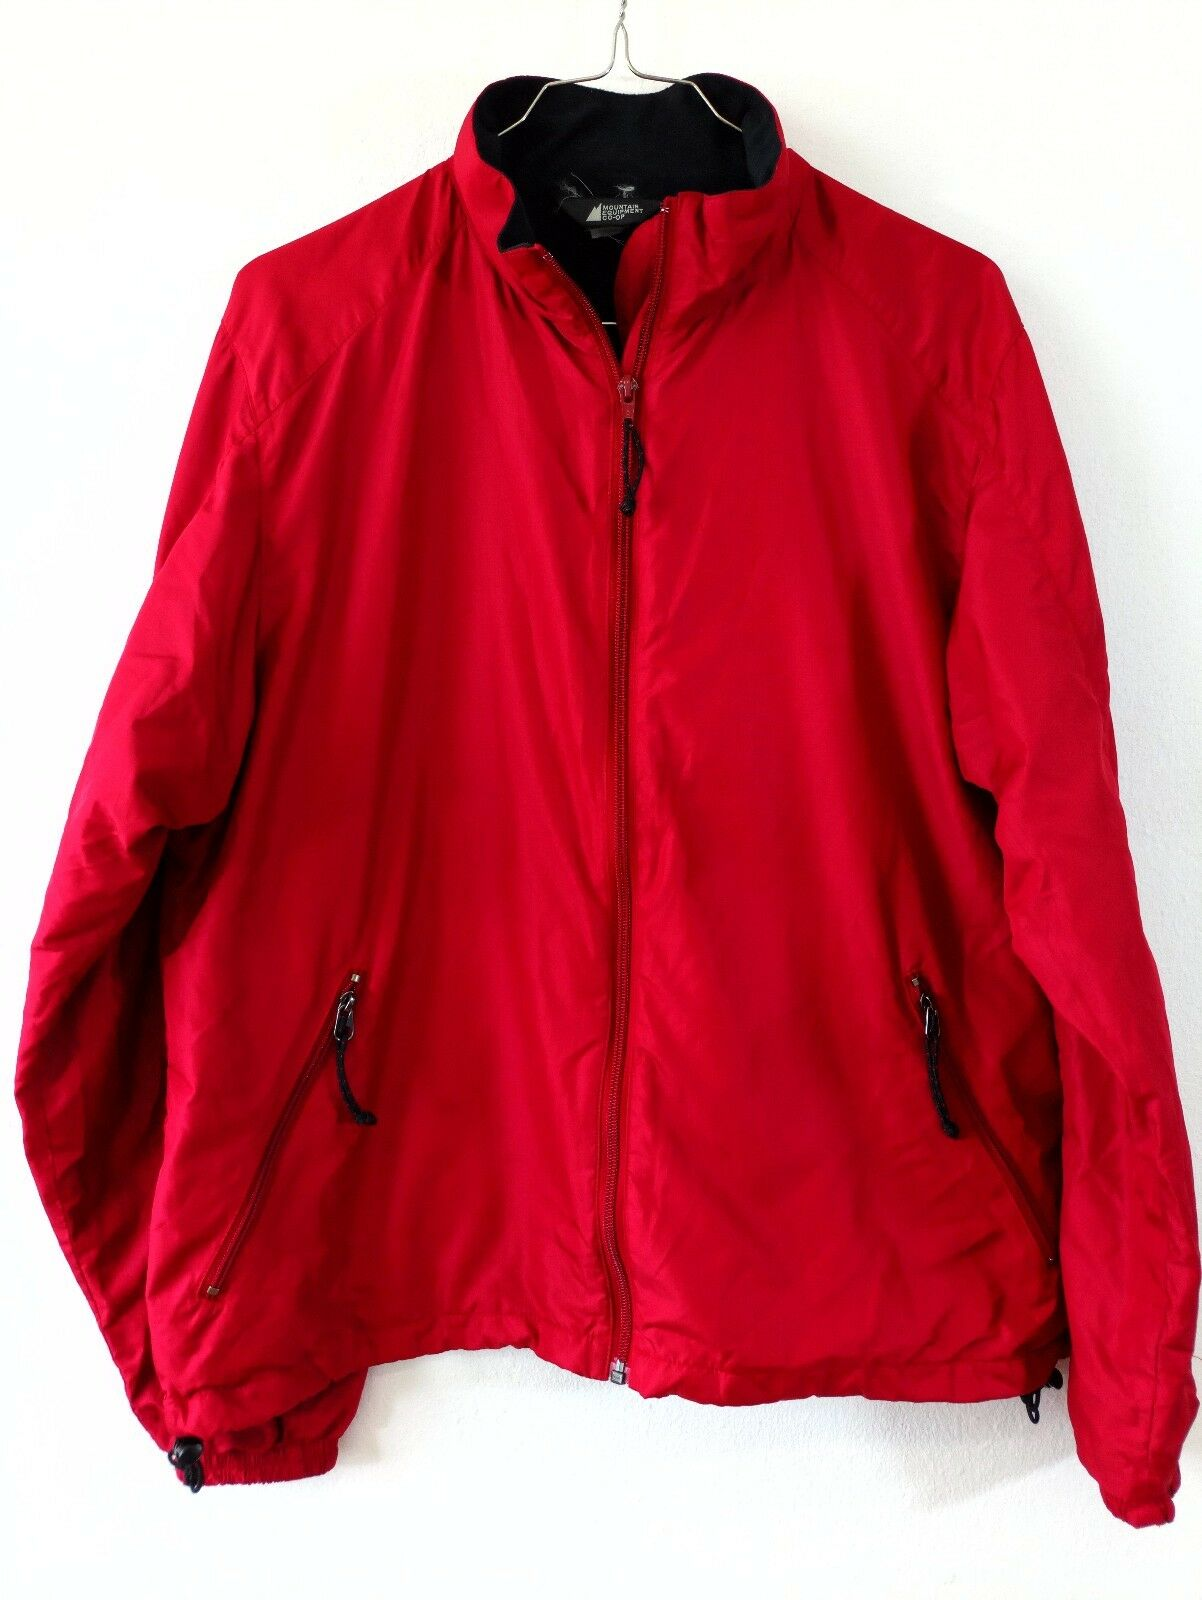 Mountain Equipment Co-op Da Donna Giacca Giacca Giacca Donna A VENTO ROSSO SZ L Canada Foderato in Pile 74be7a